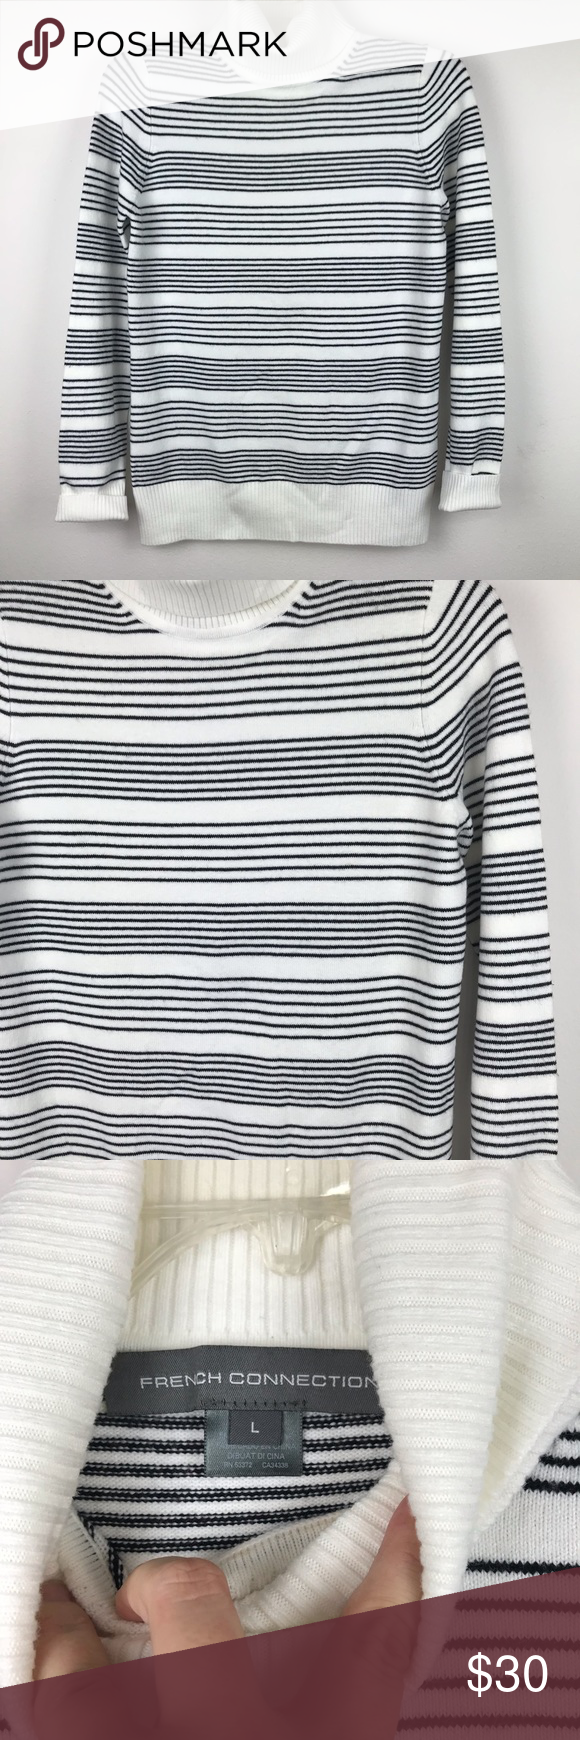 f644a176e5d859 French Connection Babysoft Turtleneck Sweater L Black and white Horizontal  striped turtleneck sweater from French connection. Baby soft material.